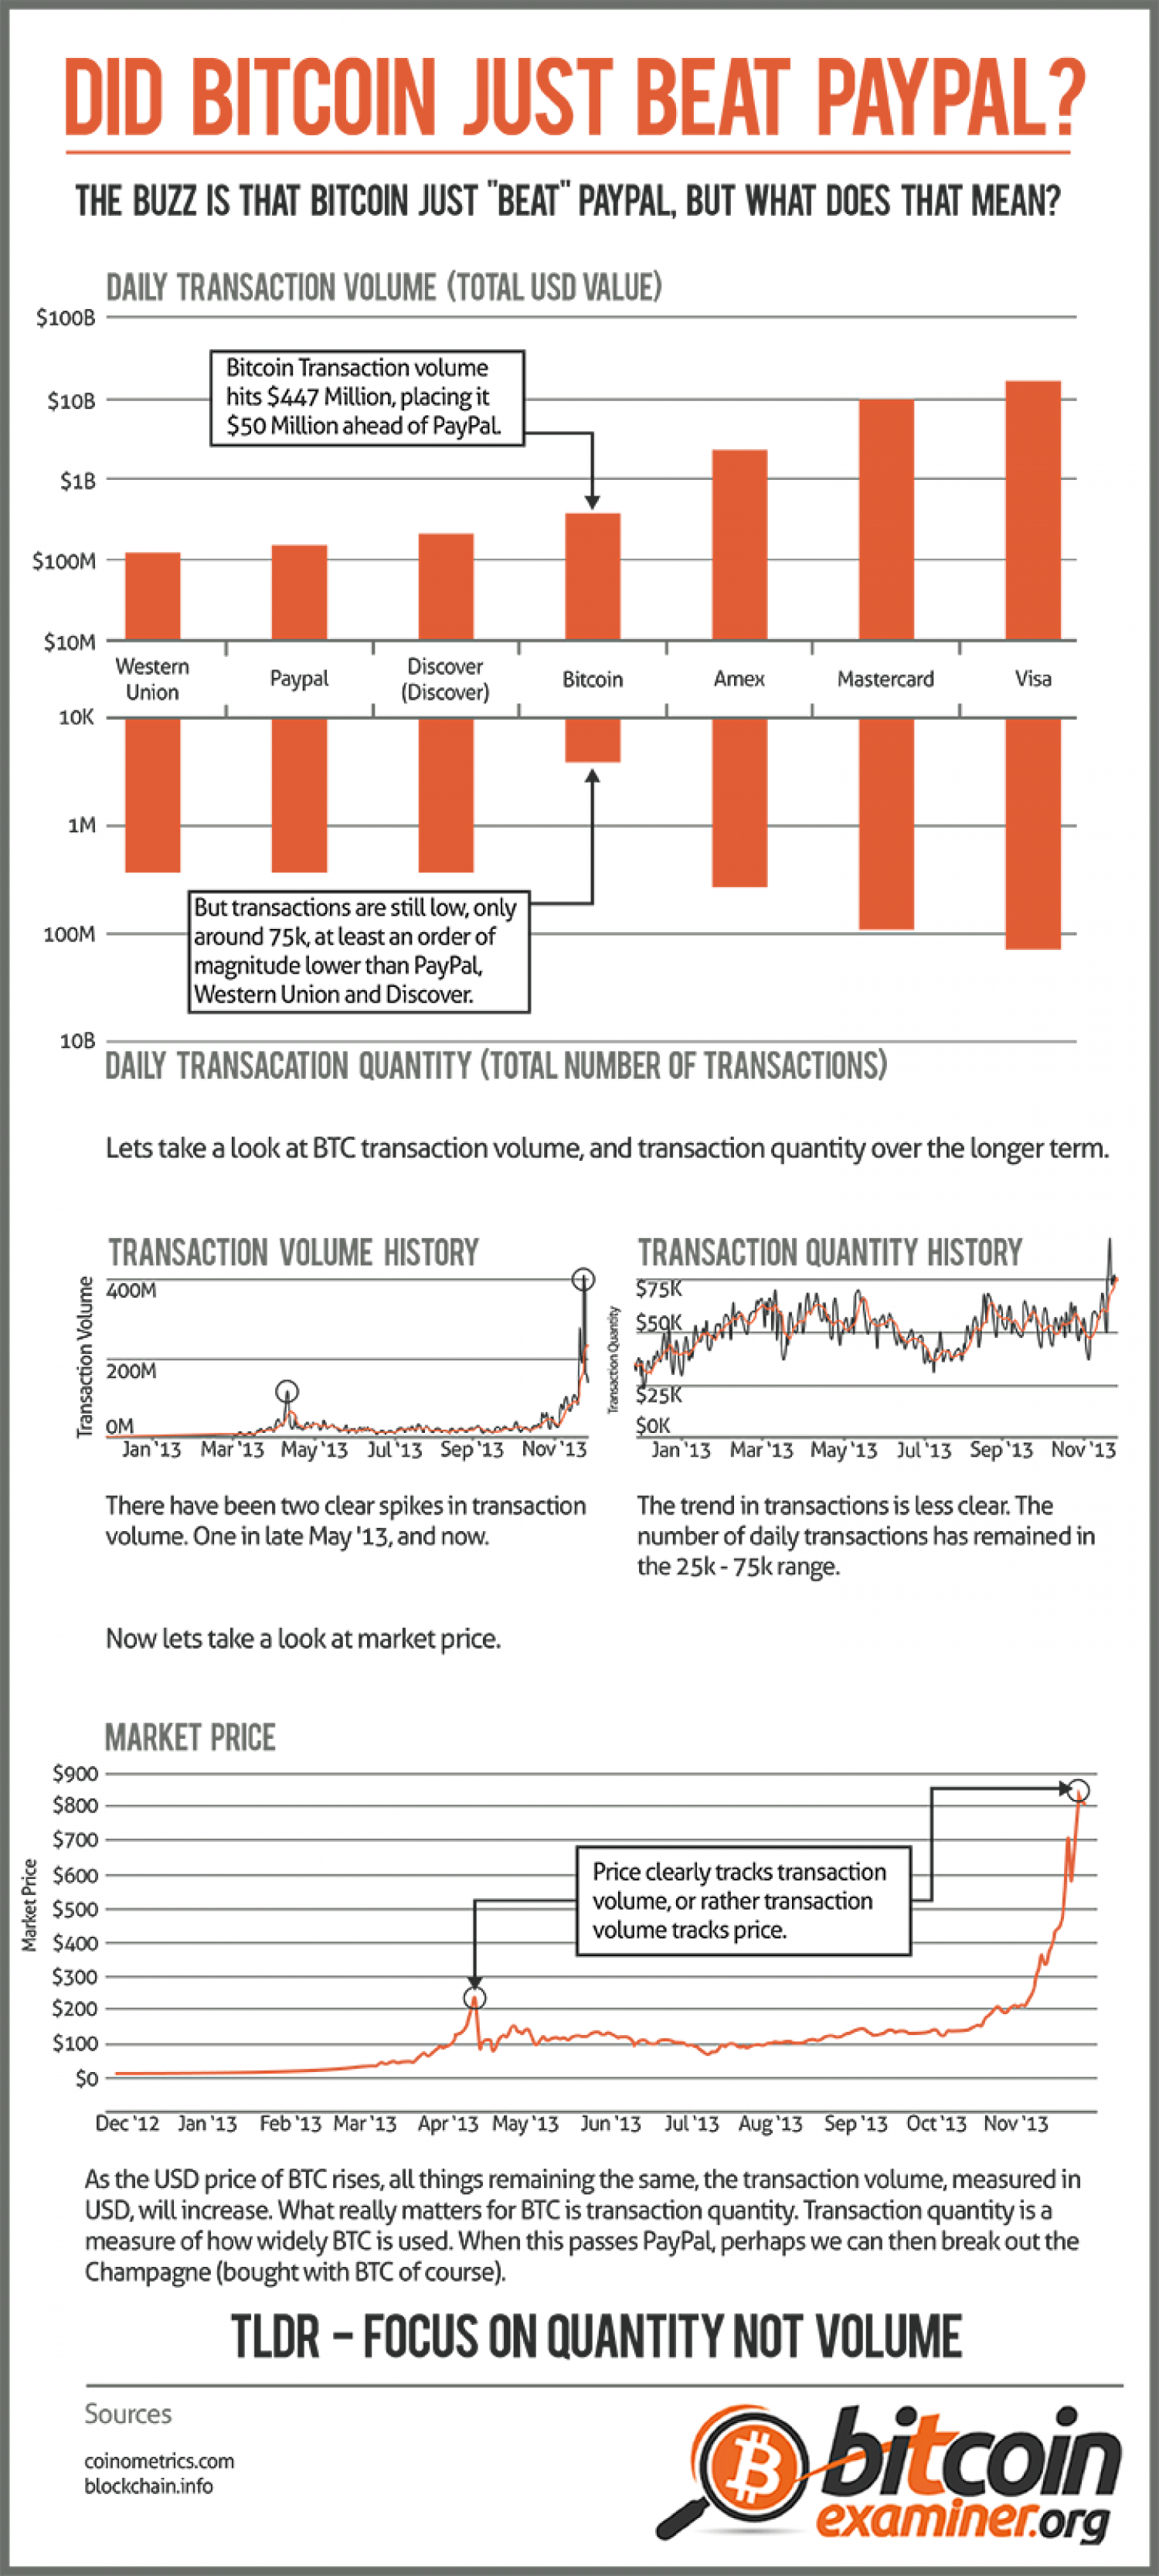 Did Bitcoin just beat Paypal? Infographic